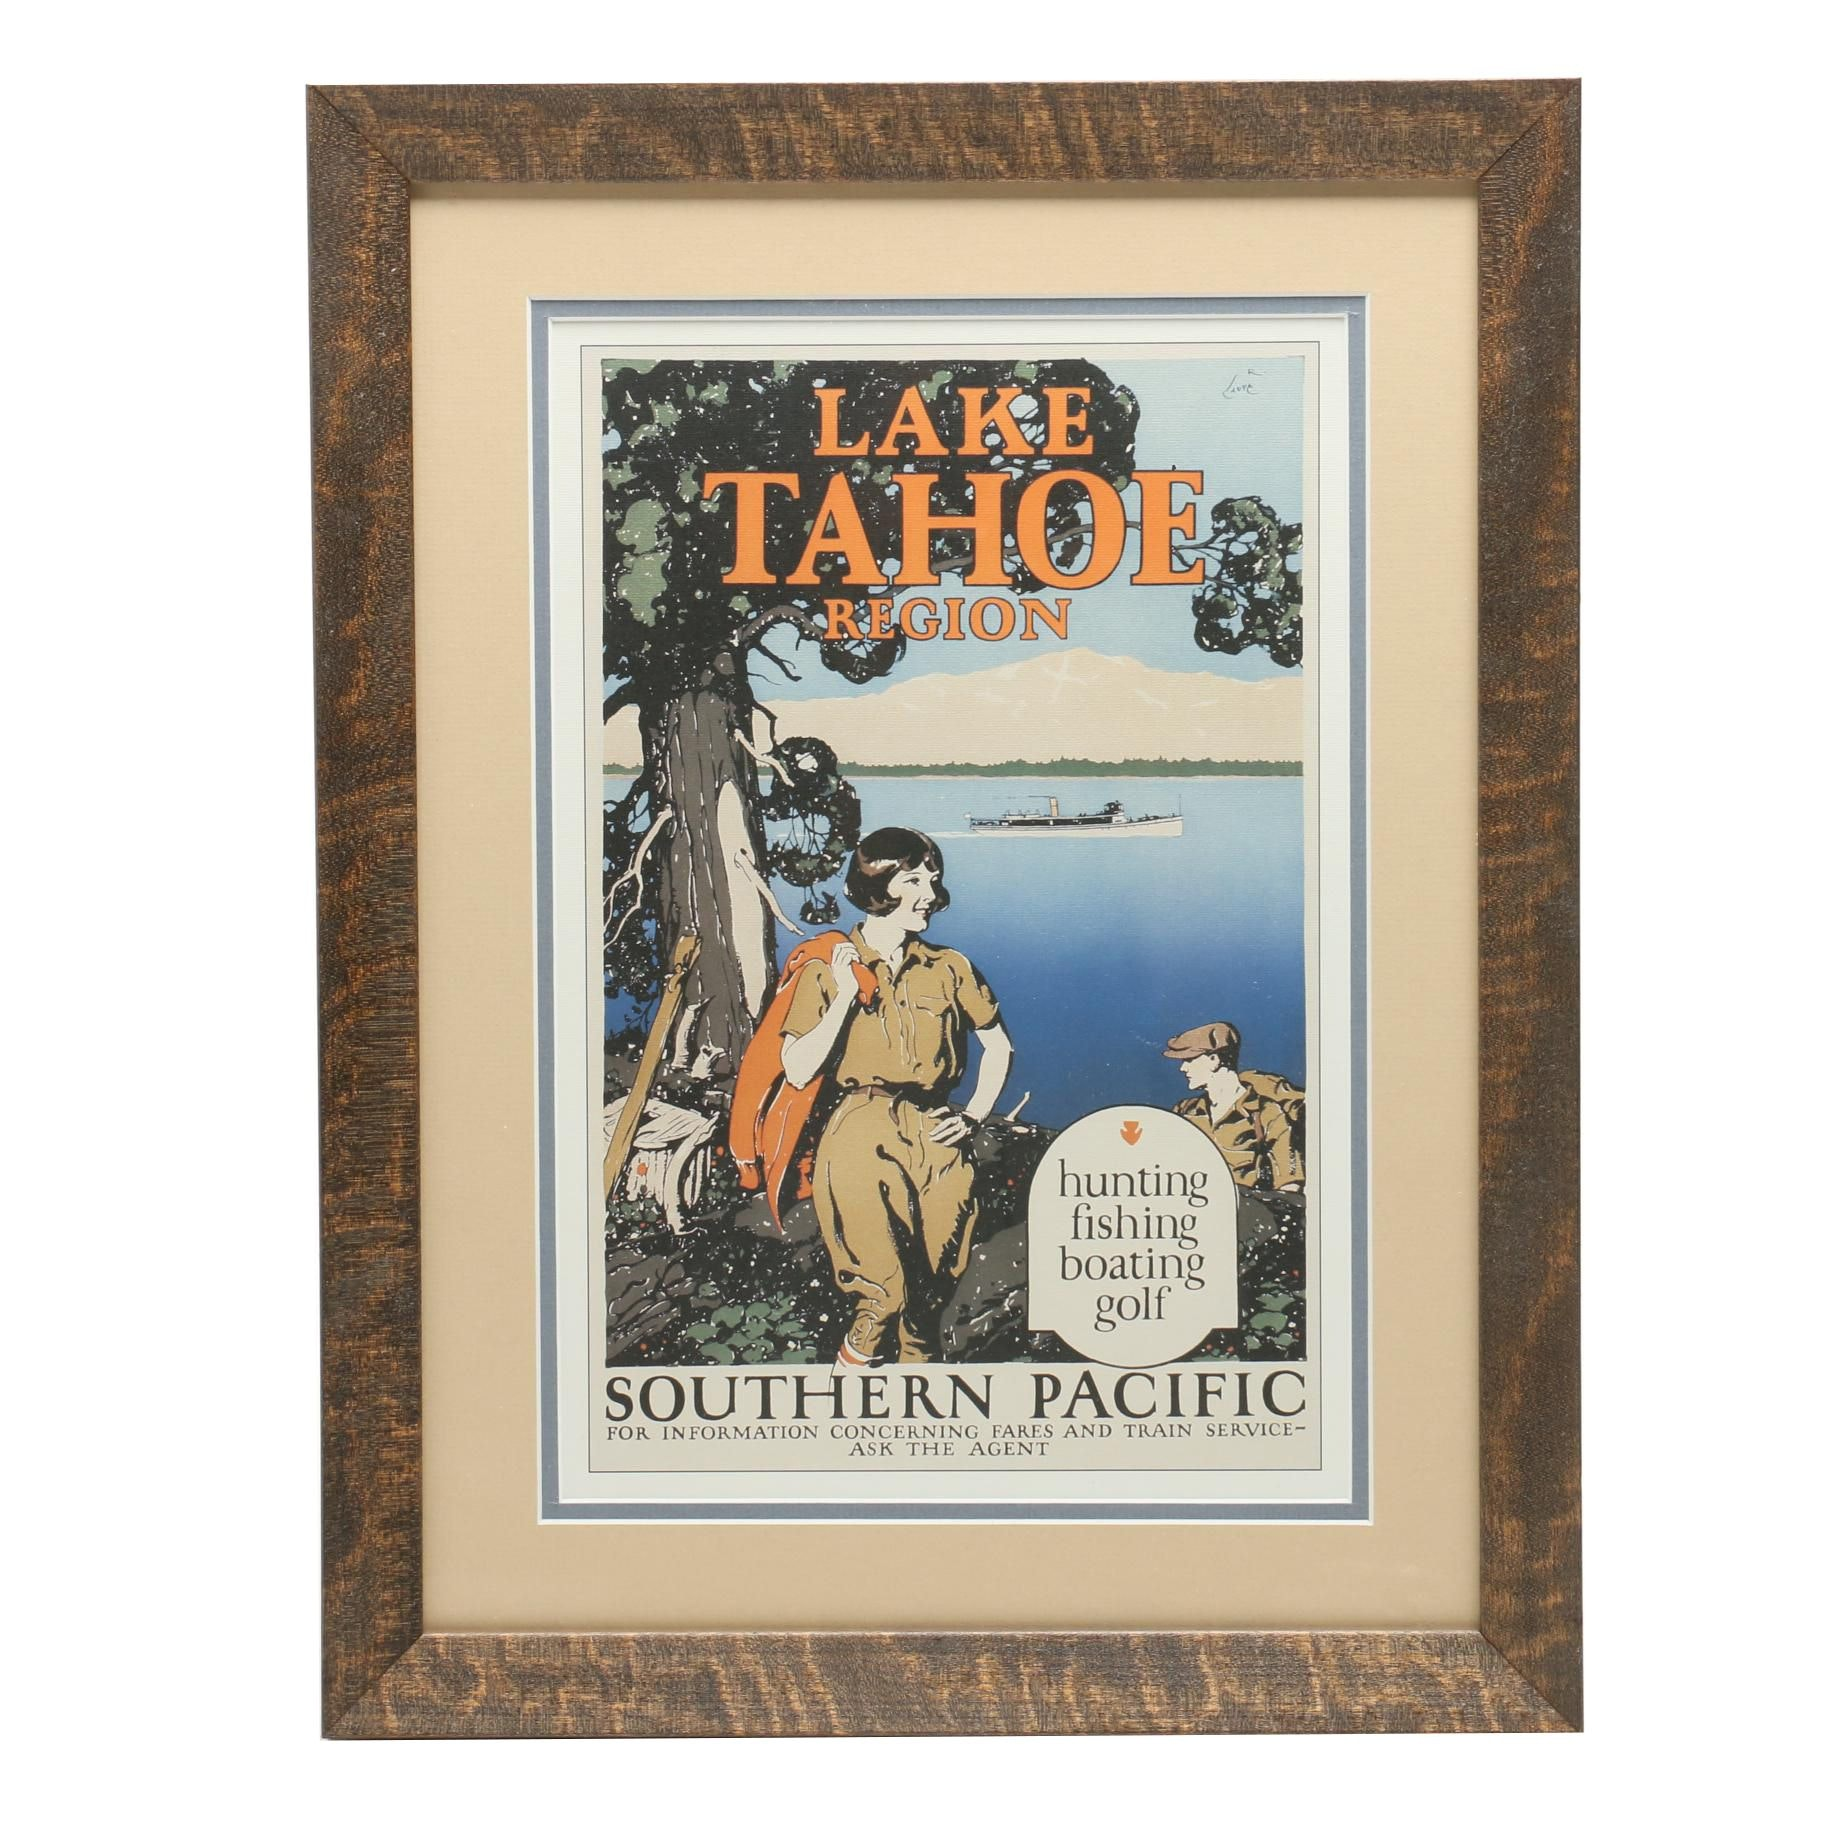 Reproduction after Wesley De Lappe Travel Poster for Southern Pacific Railroad